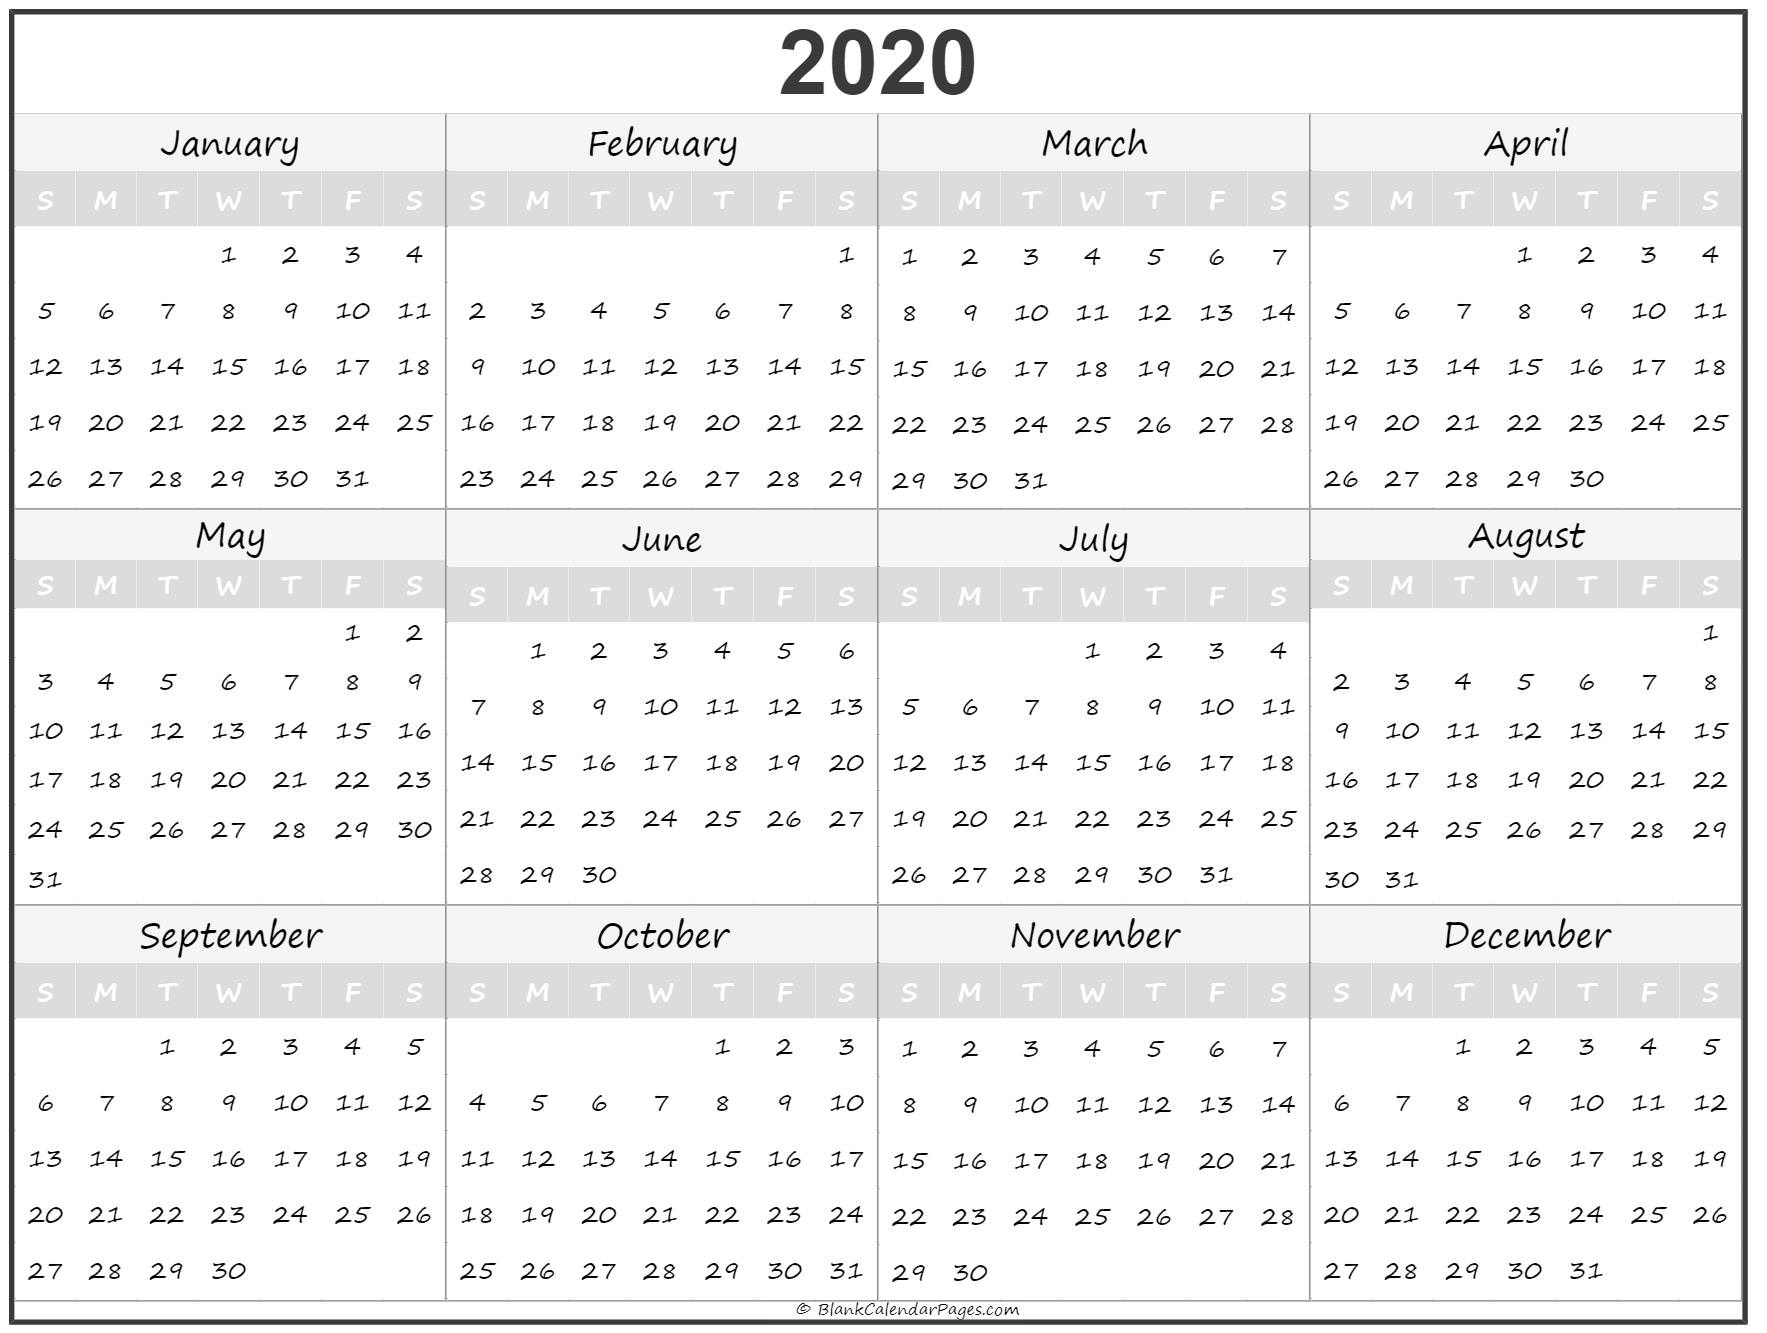 2020 Year Calendar | Yearly Printable within 2020 Calendar Year To A Page